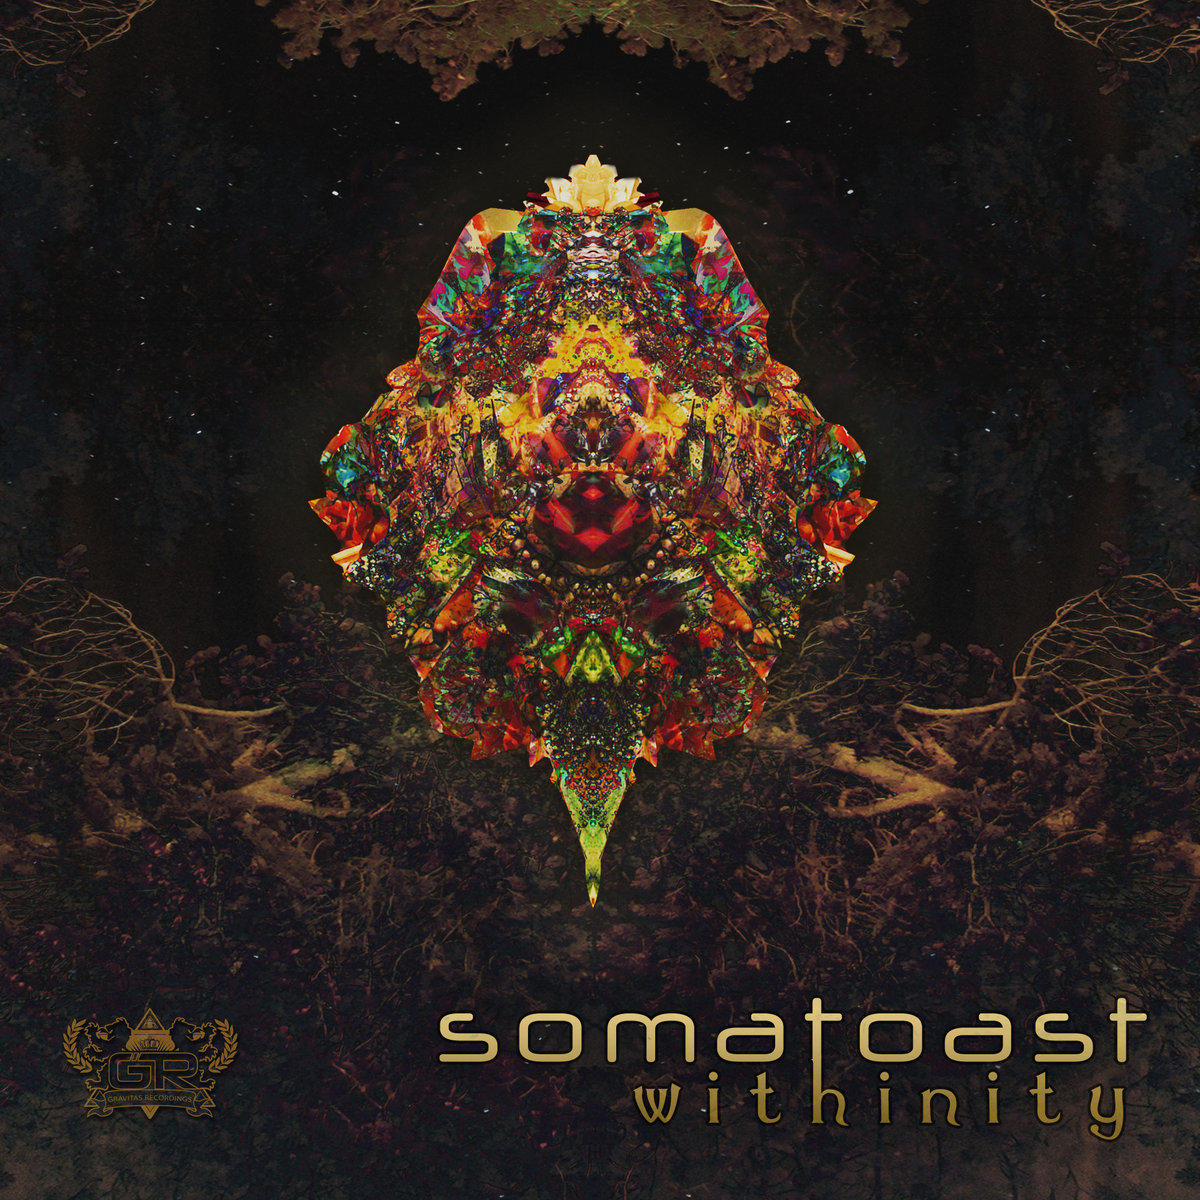 Somatoast - Right Brain Boogie @ 'Withinity' album (psychedelic, Austin)